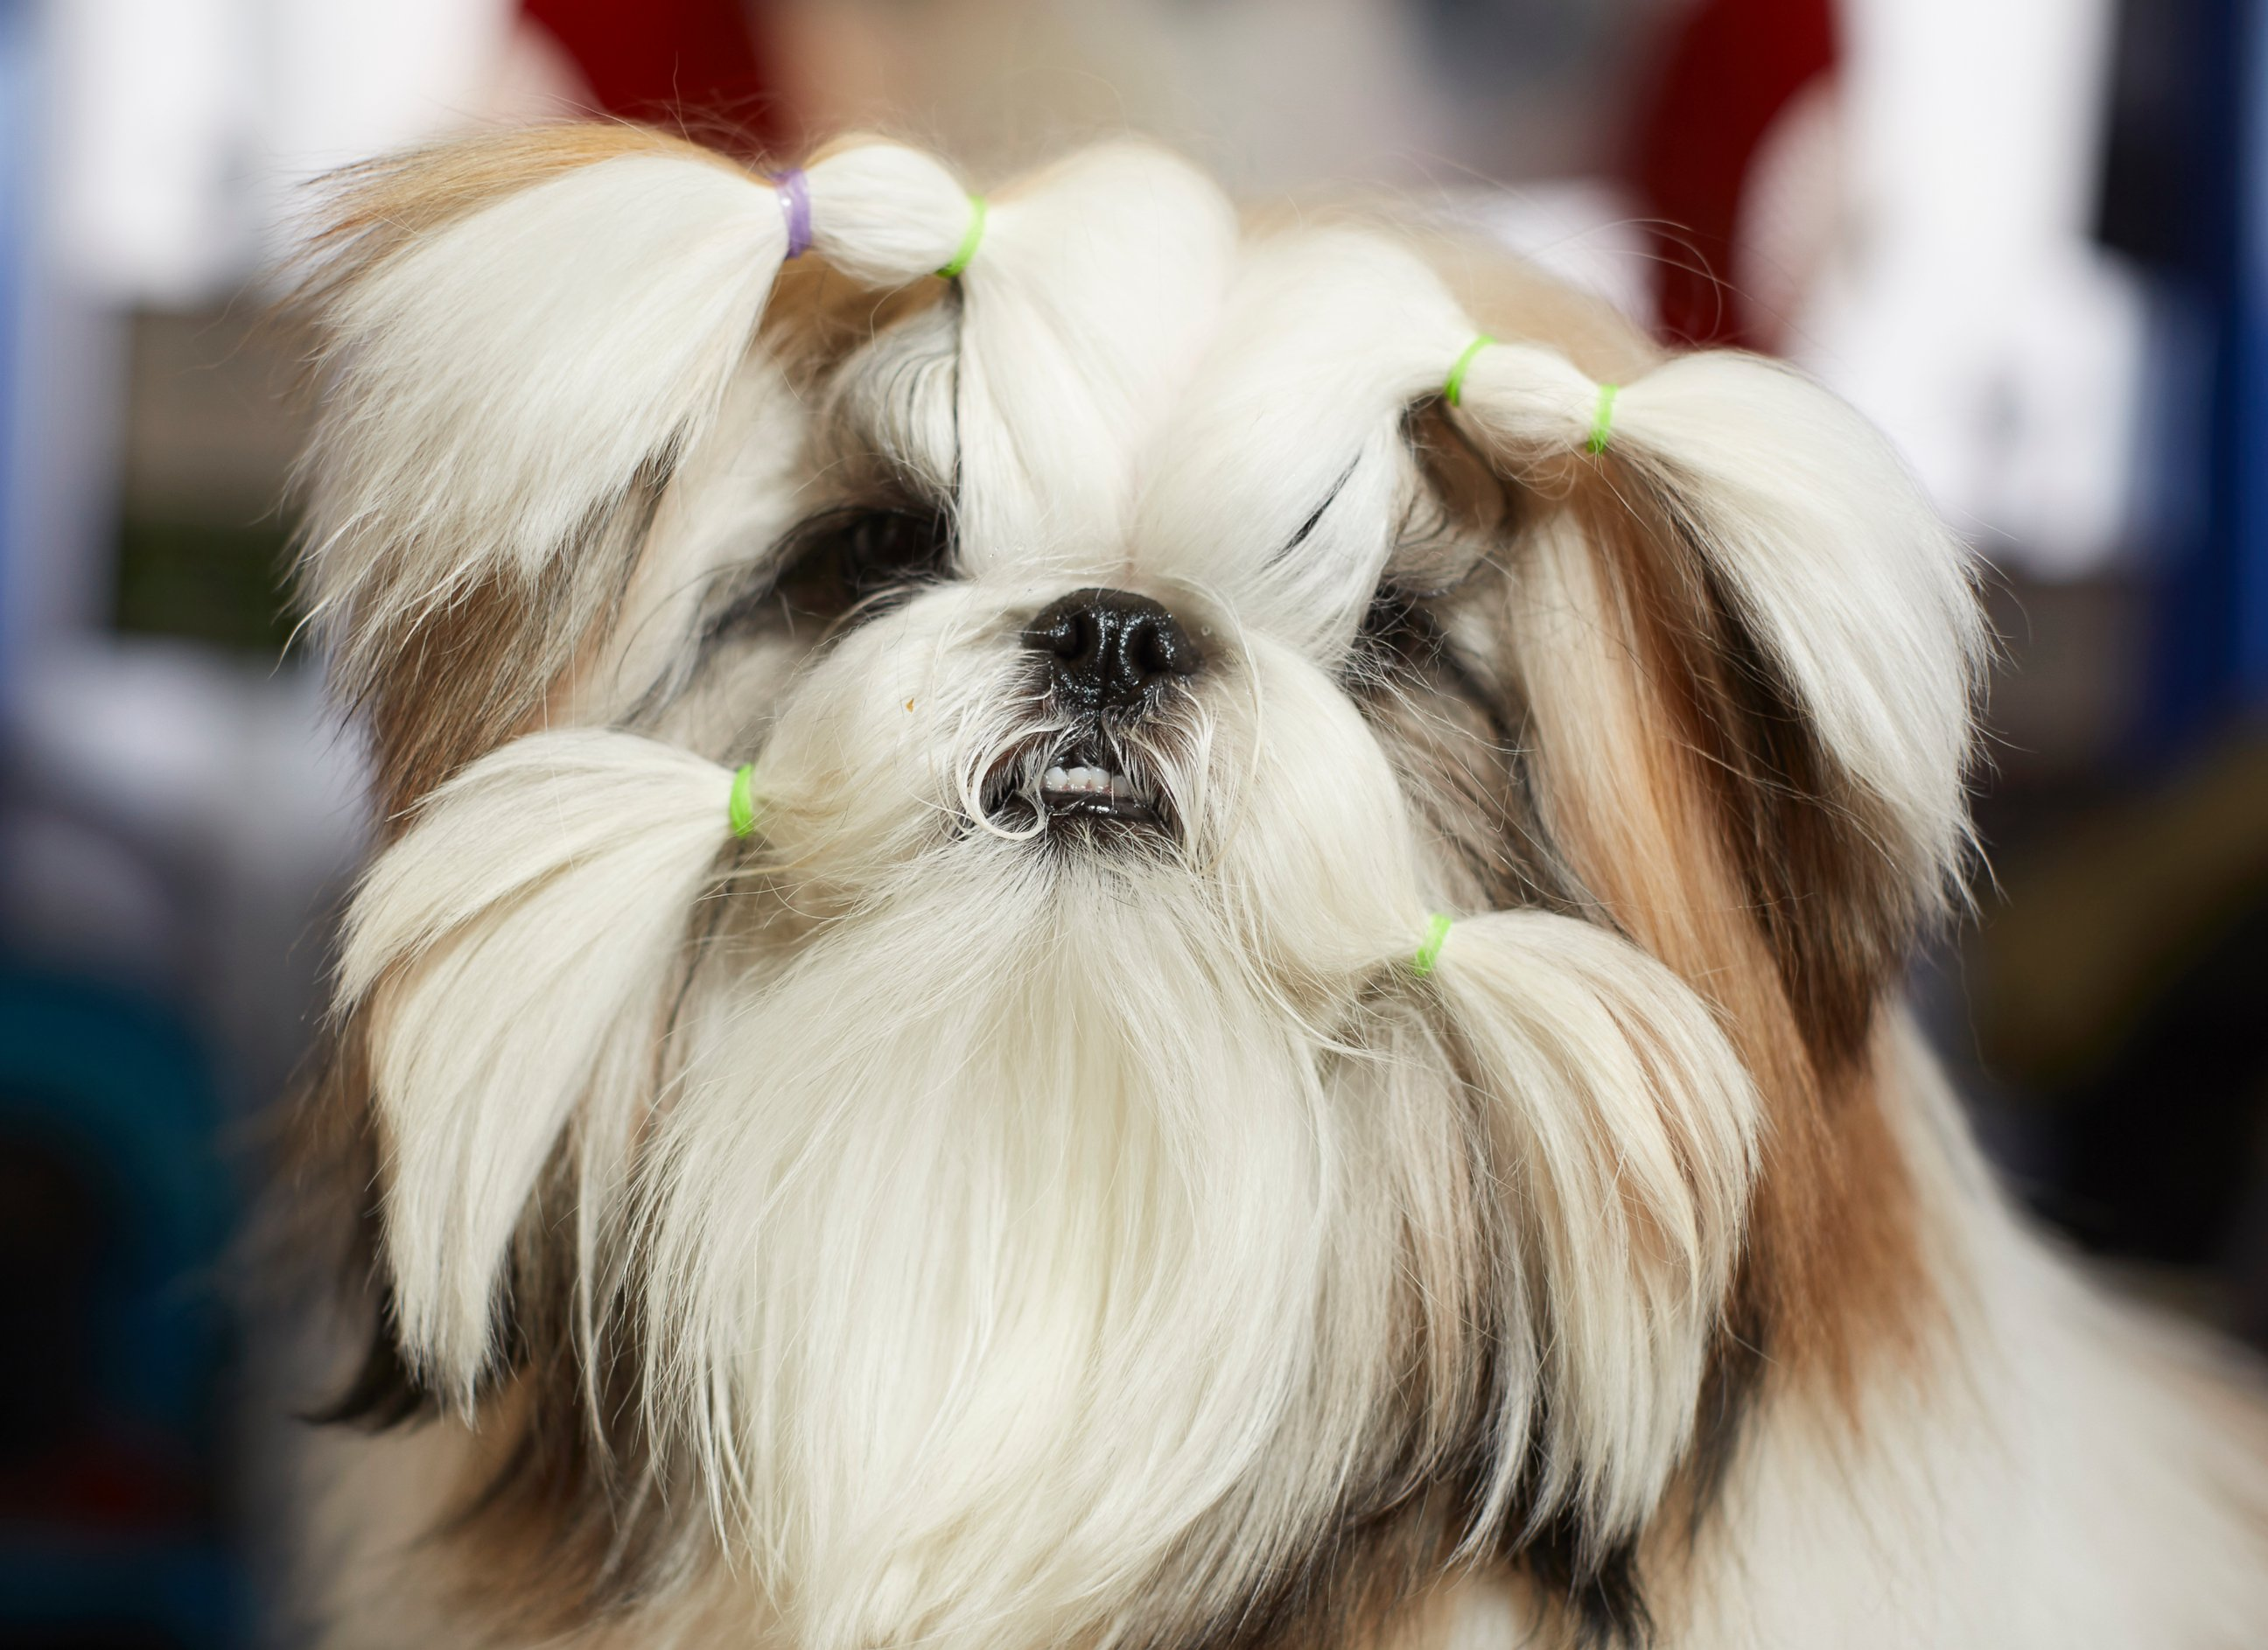 Westminster Dog Show Videos At Abc News Video Archive At